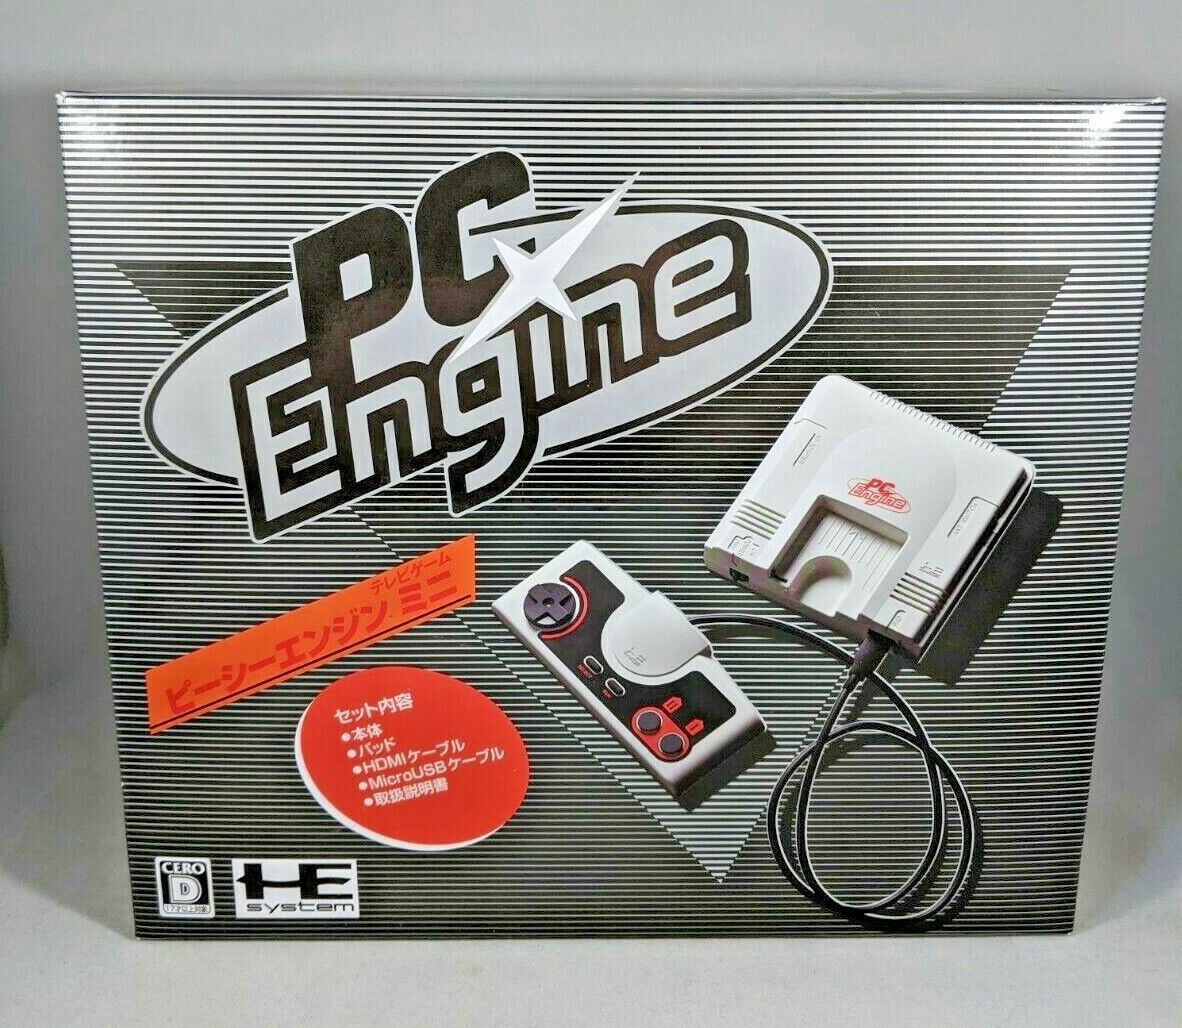 PC Engine Mini with 34 PC Engine Games + 24 TurboGrax 16 Games